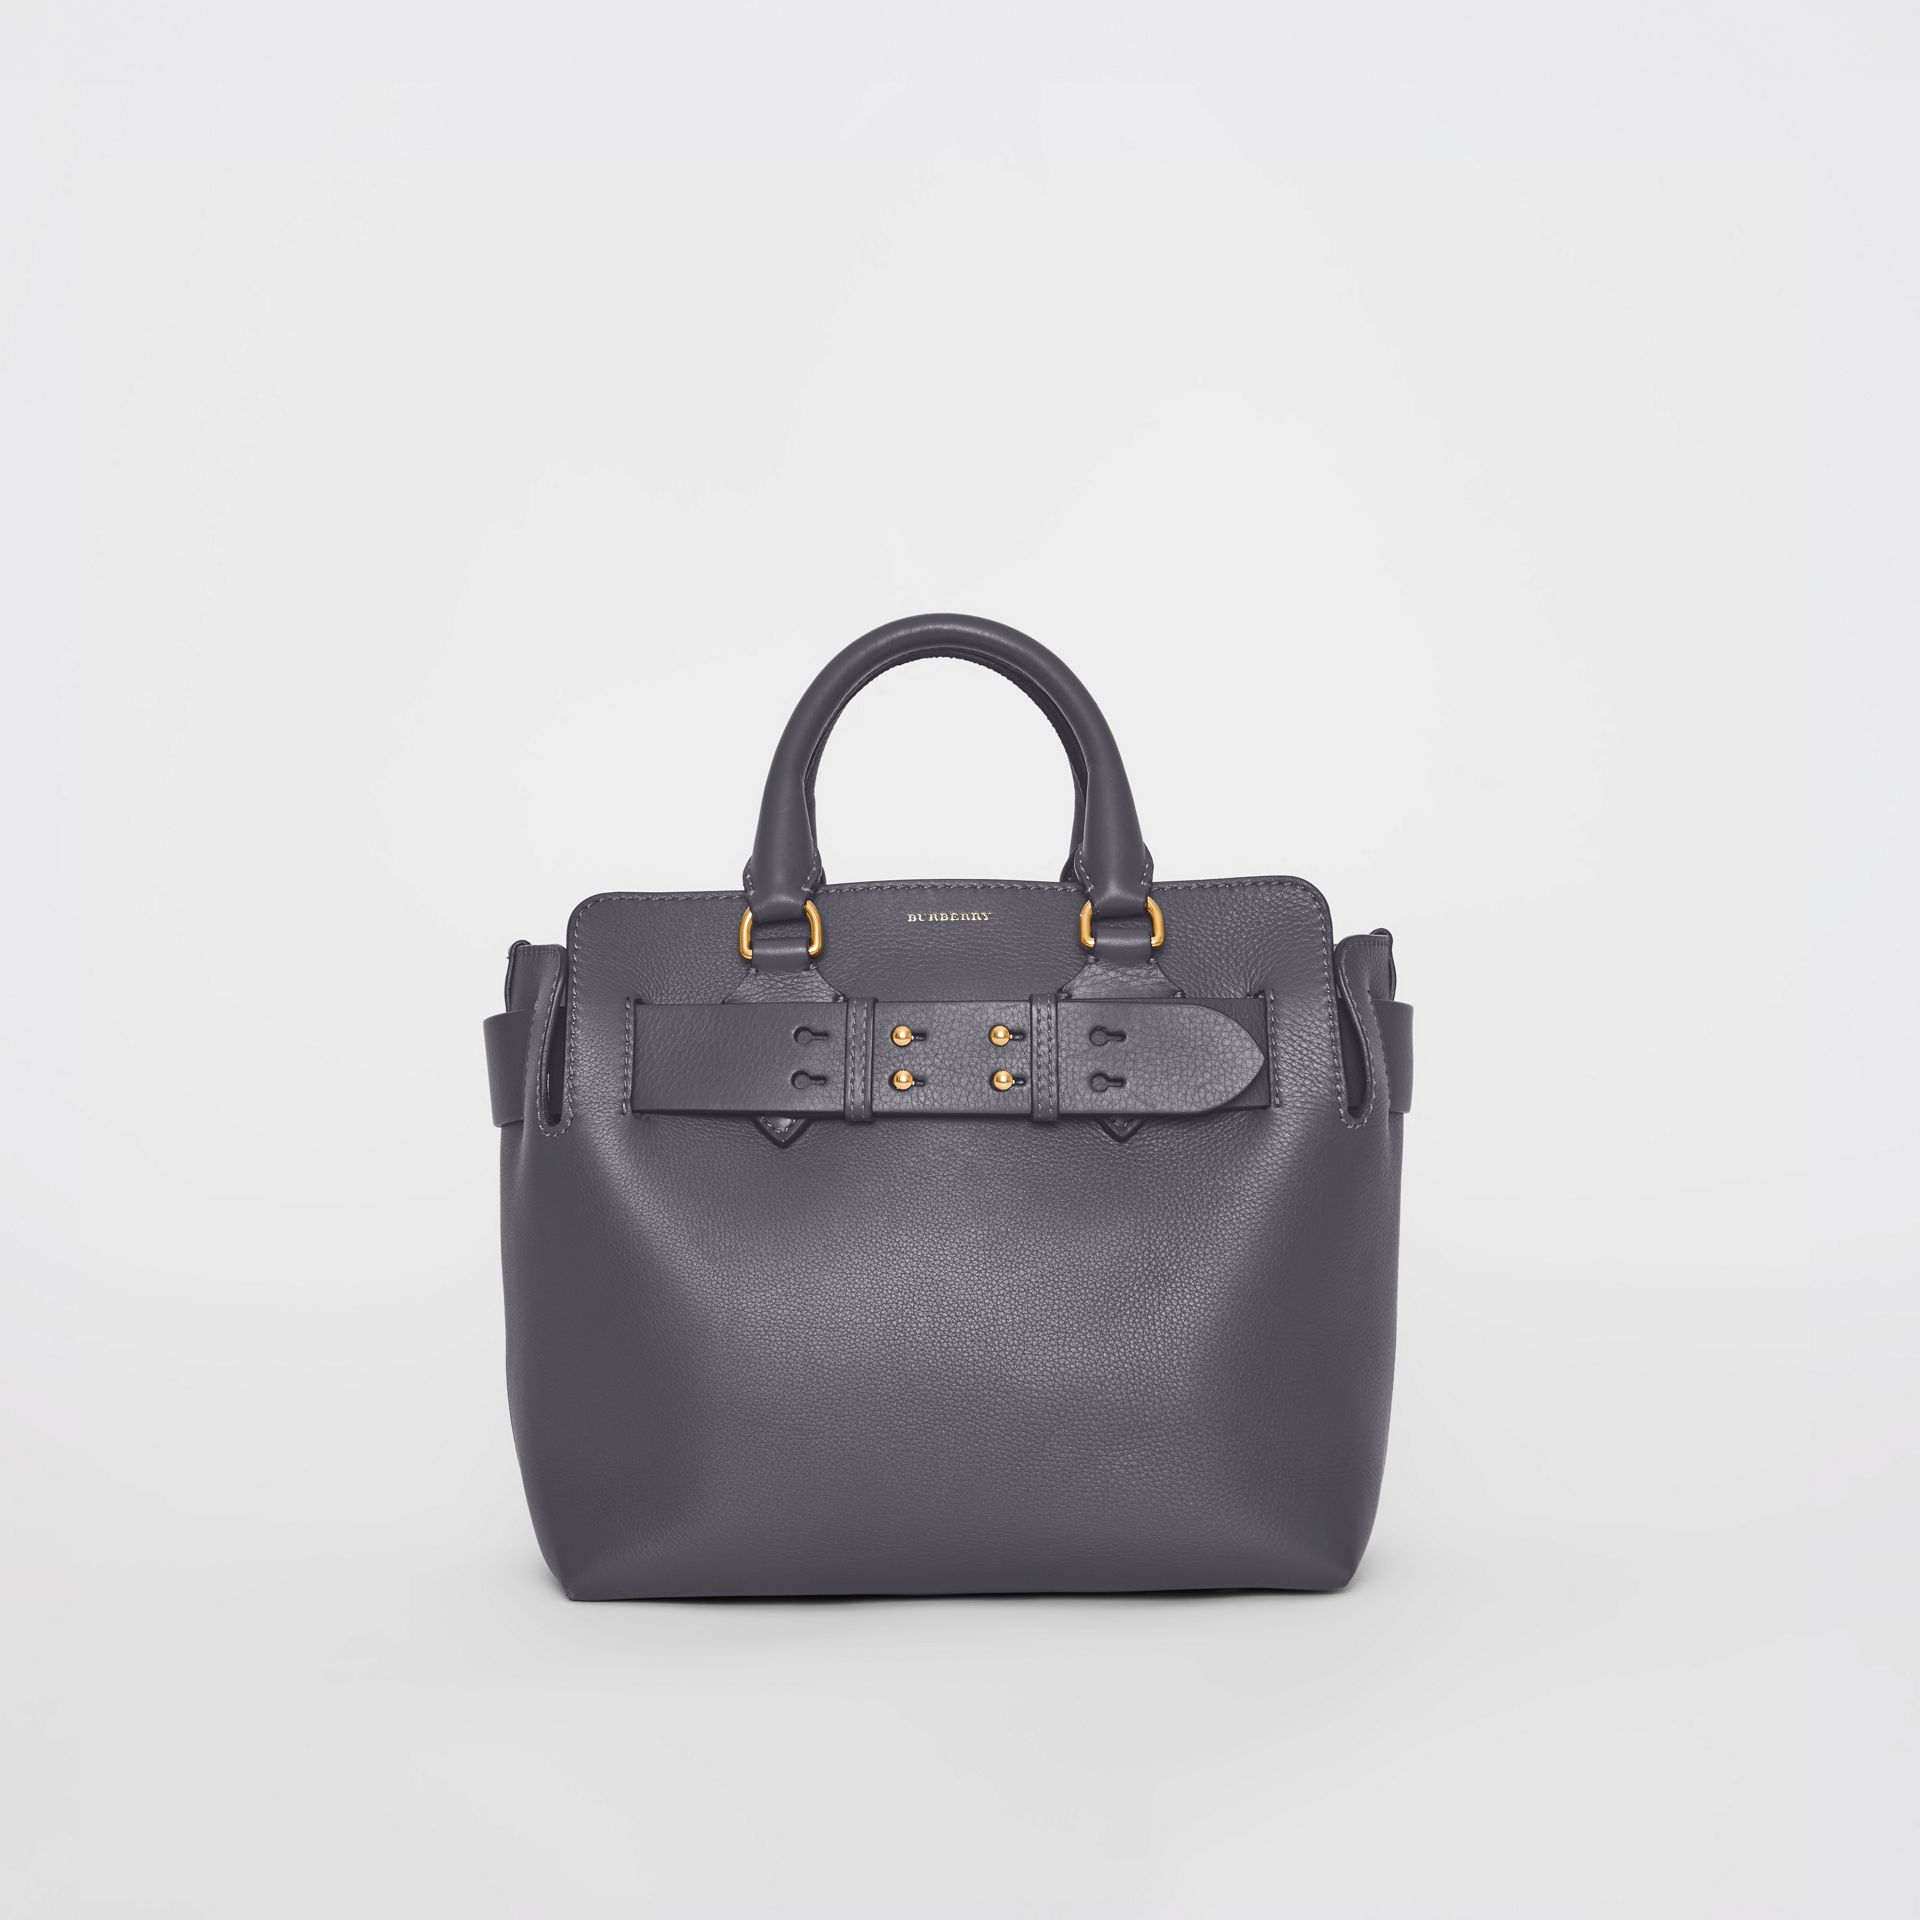 Petit sac The Belt en cuir (Gris Anthracite) - Femme | Burberry - photo de la galerie 0